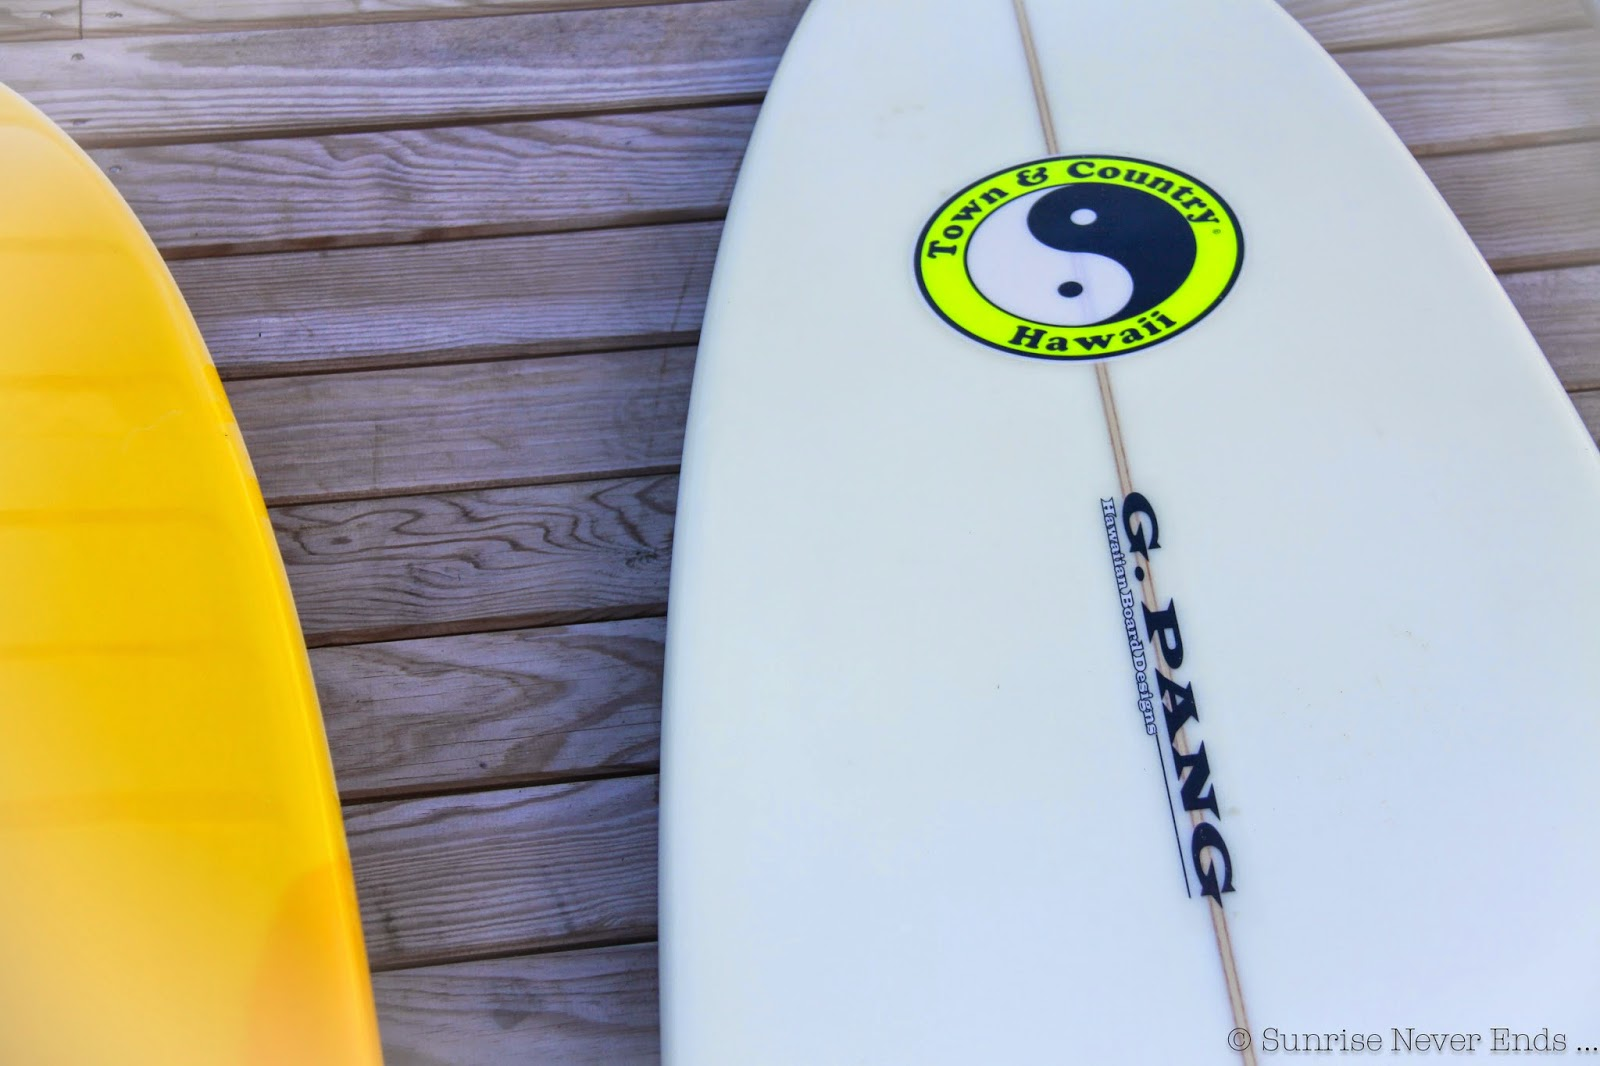 surf,french california,hossegor,bensimon,photo shooting,chipiron surfboard,father and son,town & country,lake loft